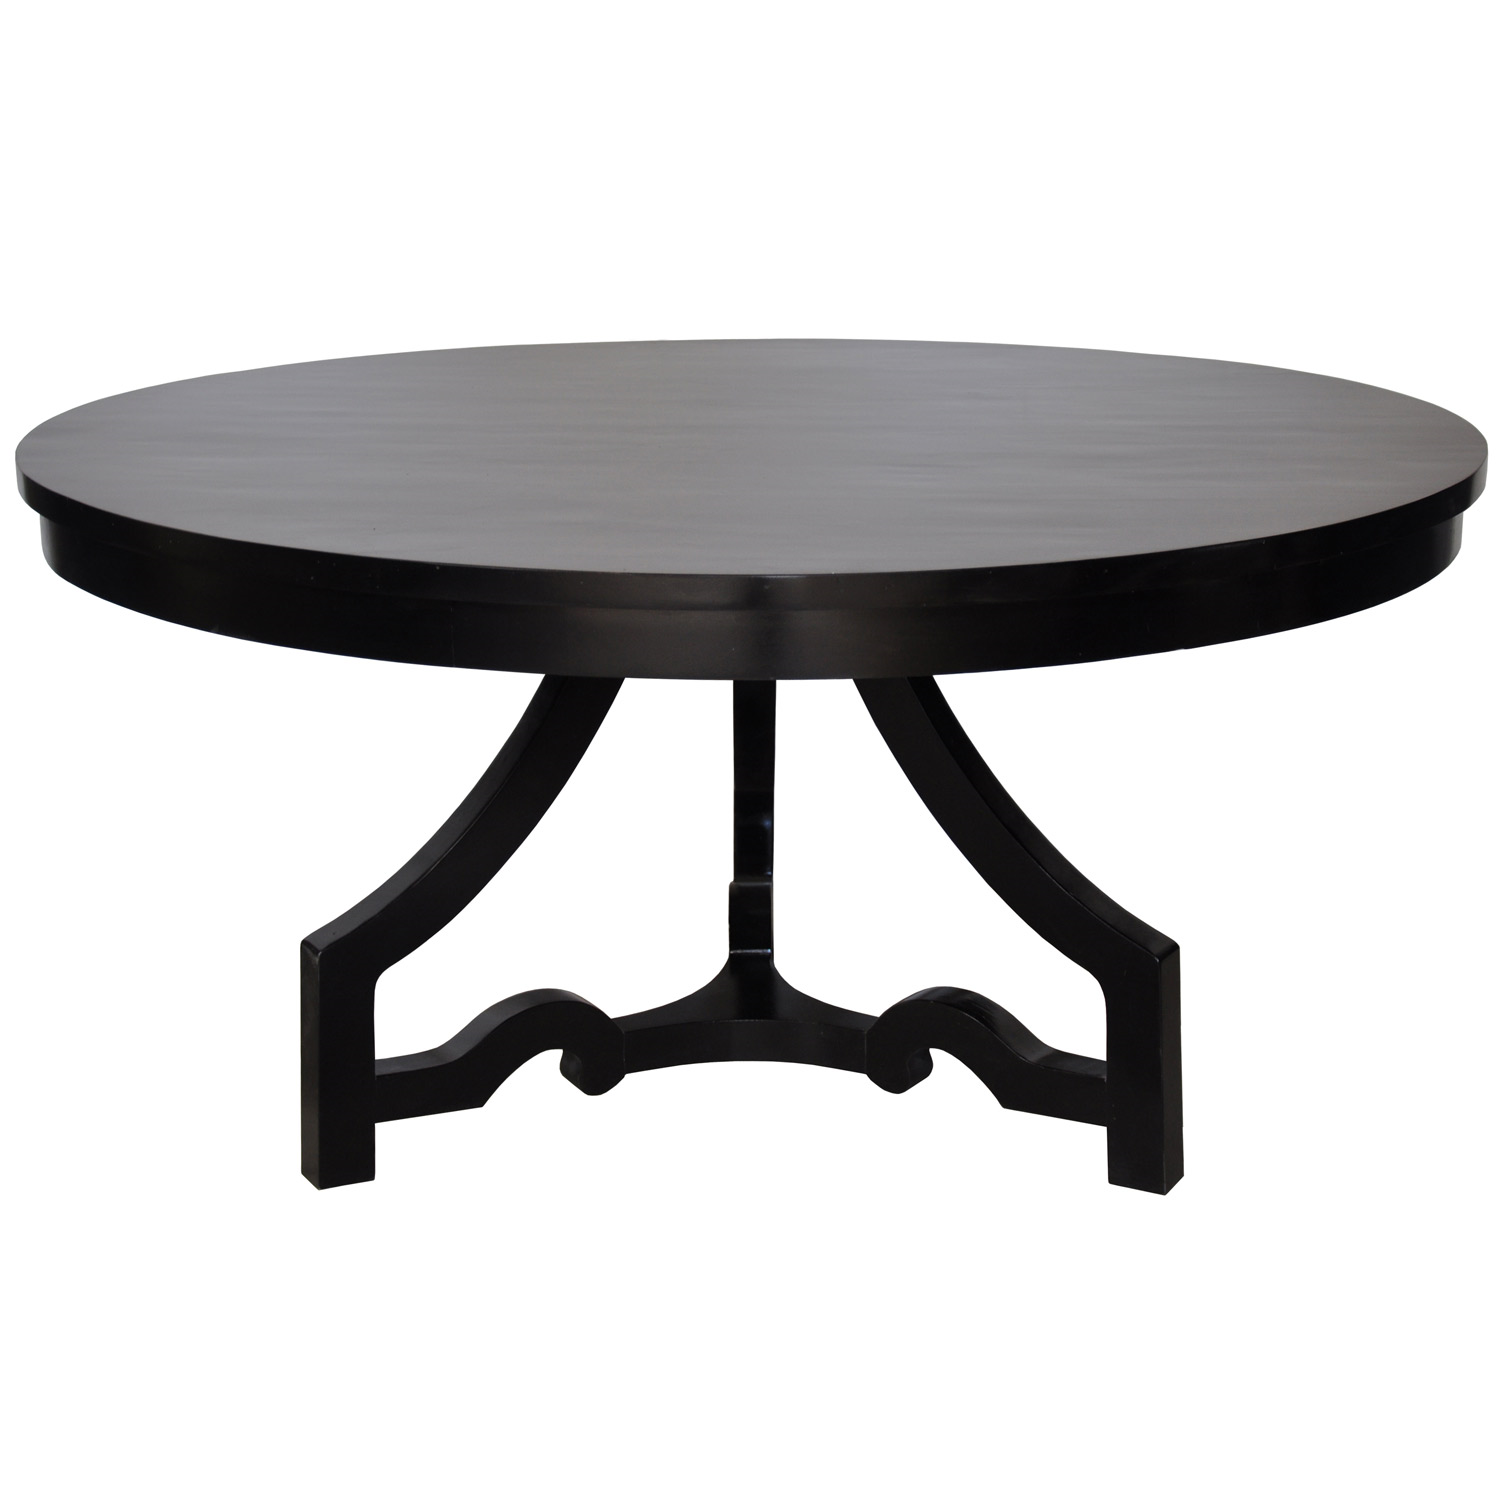 Round Dining Table Distressed Black